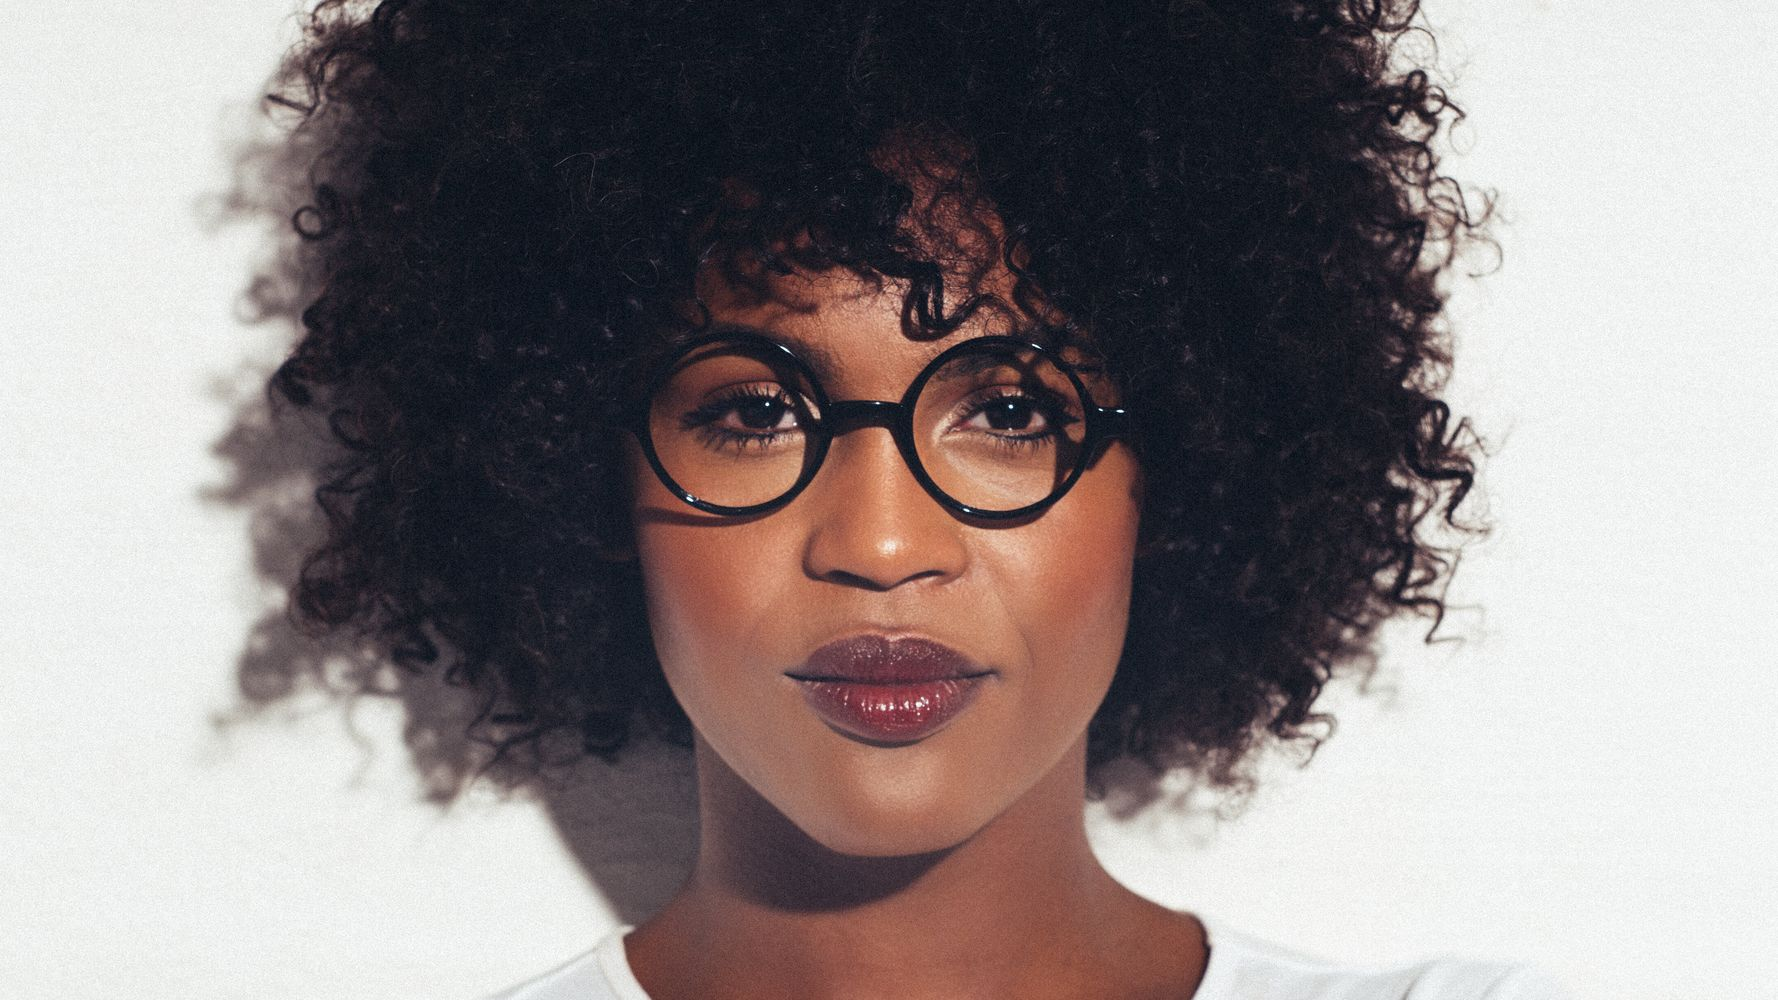 Black Women With Natural Hairstyles Less Likely To Get Job Interviews Study Reveals Huffpost Life